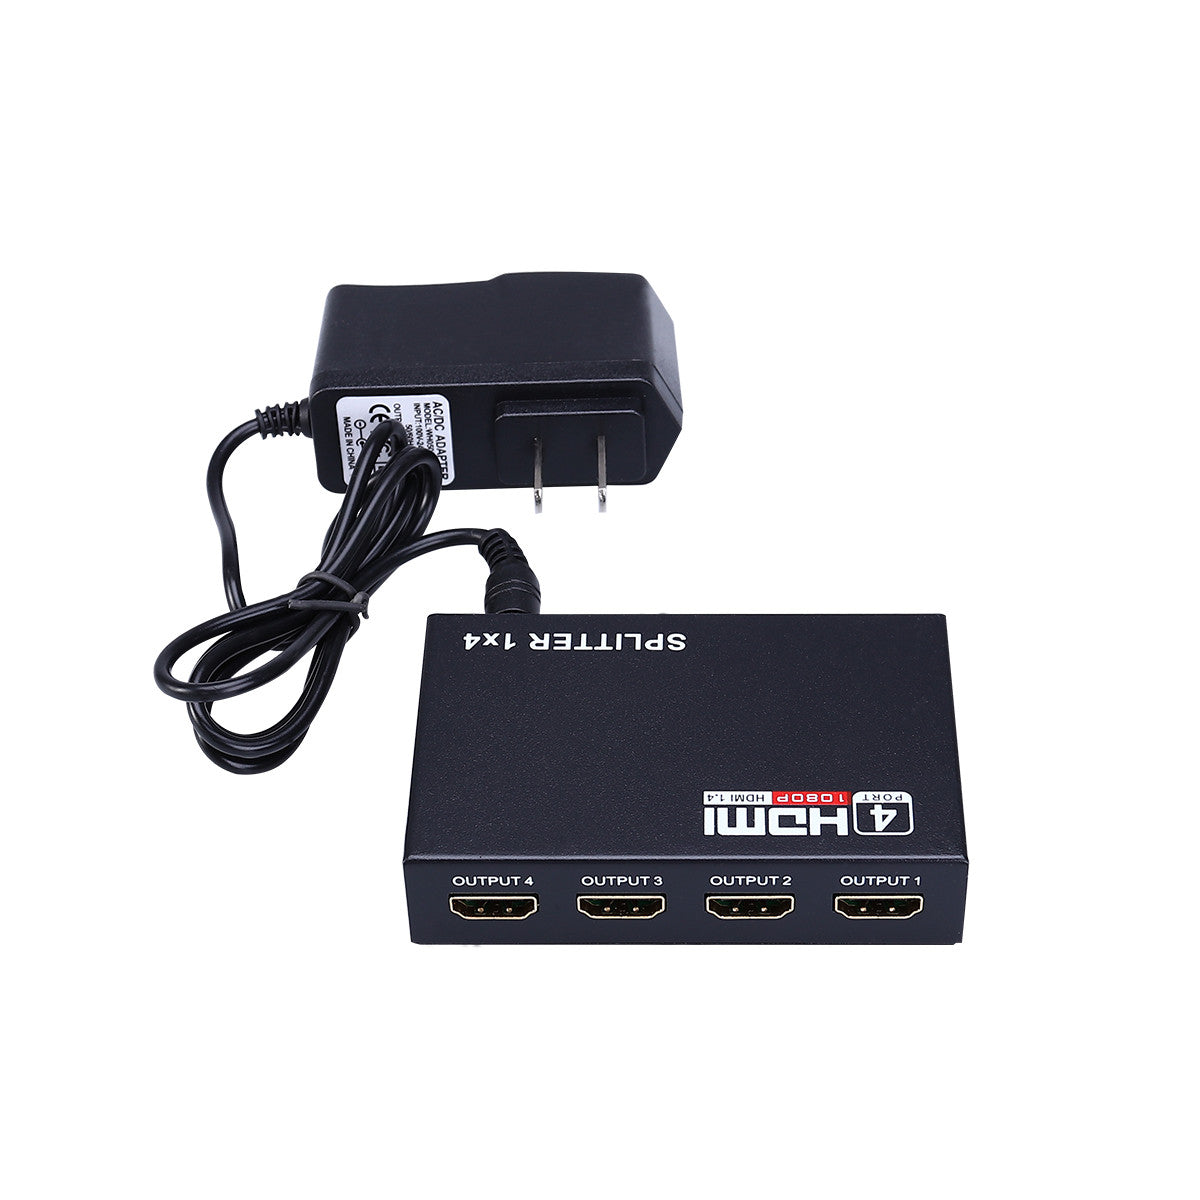 1 in 4 out Full HD 1080P 3D HDMI Splitter 4 Port Hub Repeater Amplifier with US-plug Power Adapter (Black)